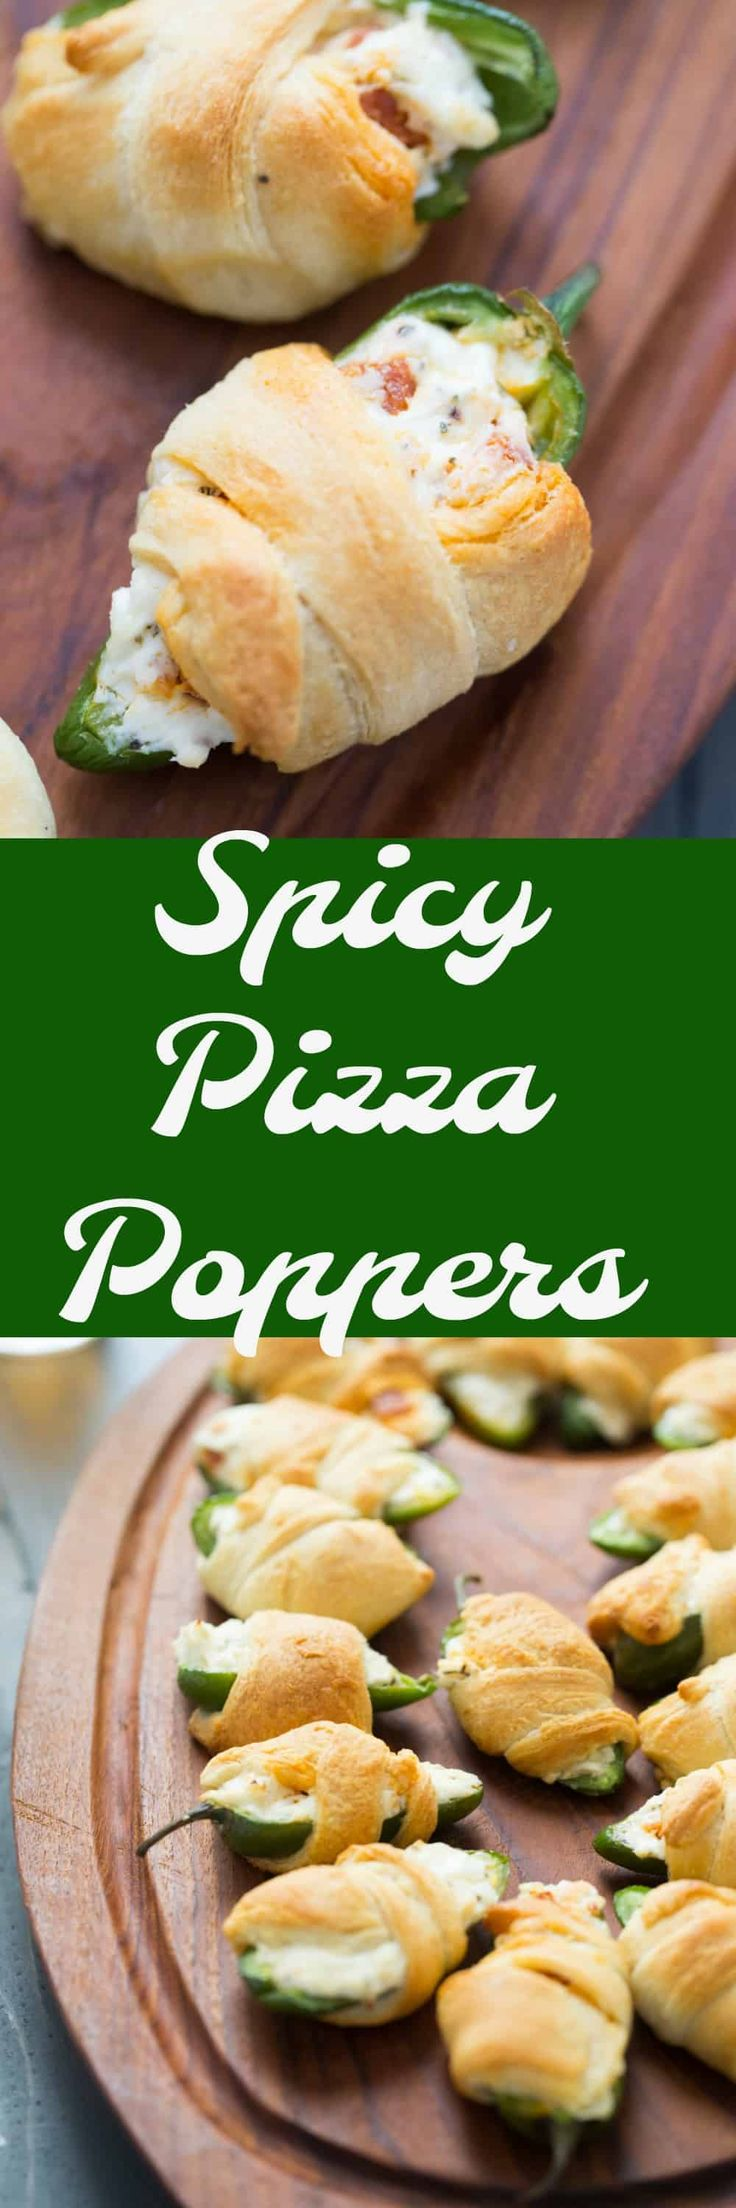 These pizza poppers are a cross between jalapeno poppers and pizza rolls. They are flakey and butter on the outside, but spicy and creamy on the inside! via @Lemonsforlulu